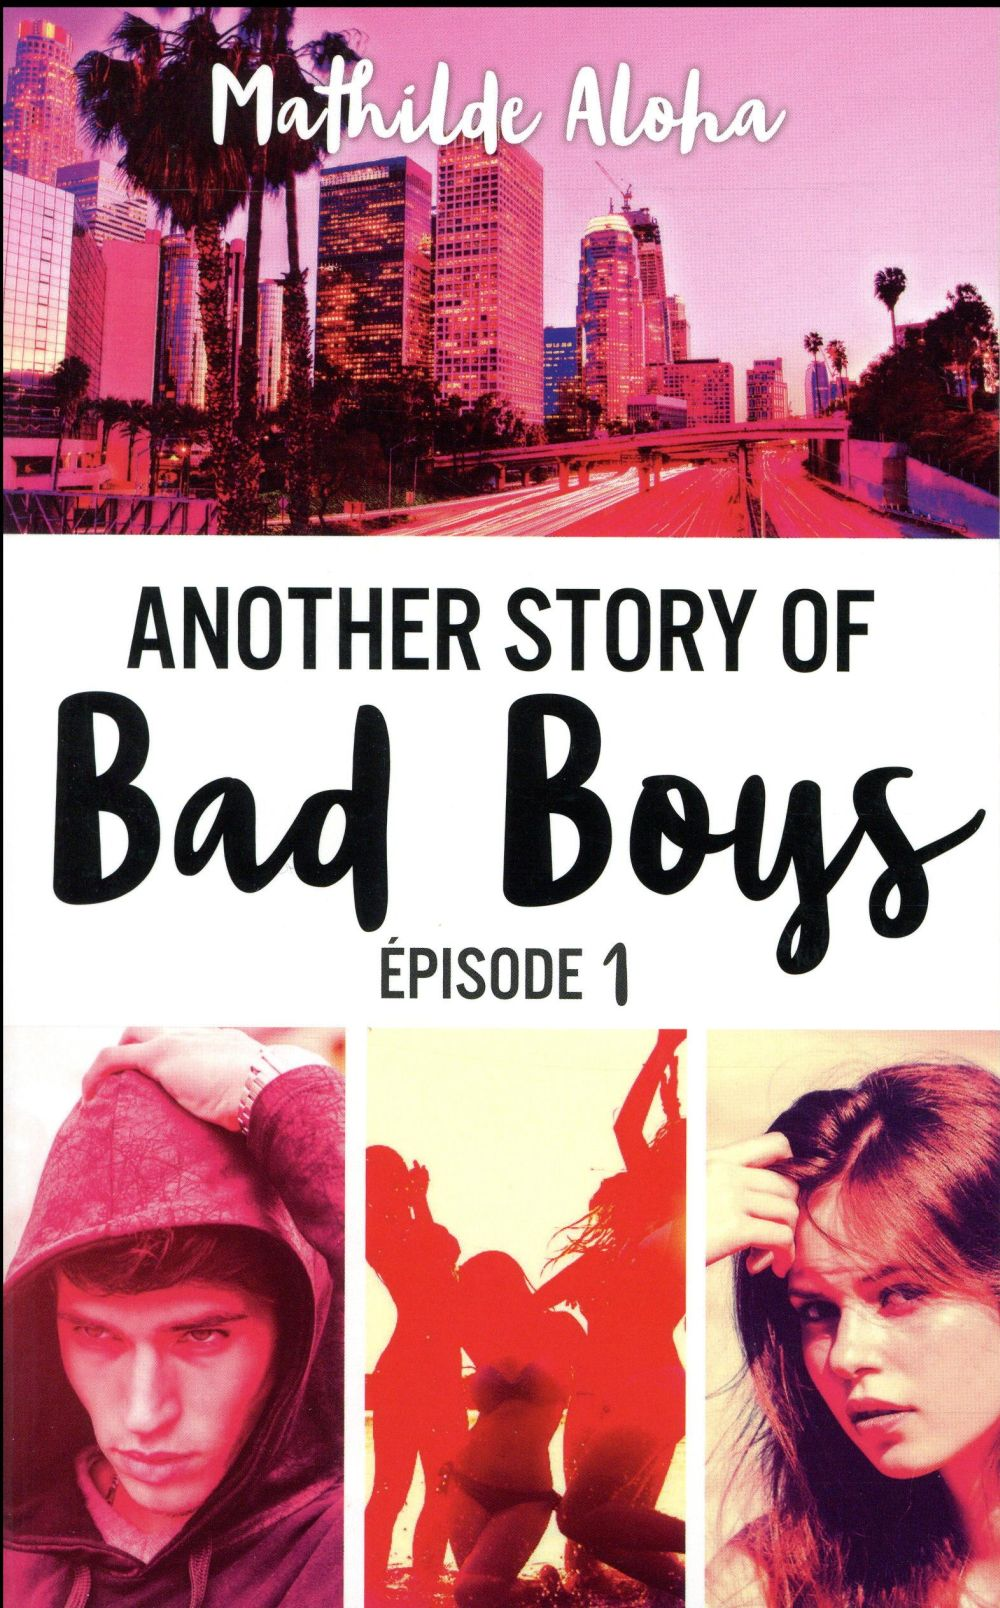 ANOTHER STORY OF BAD BOYS T.1 ALOHA, MATHILDE